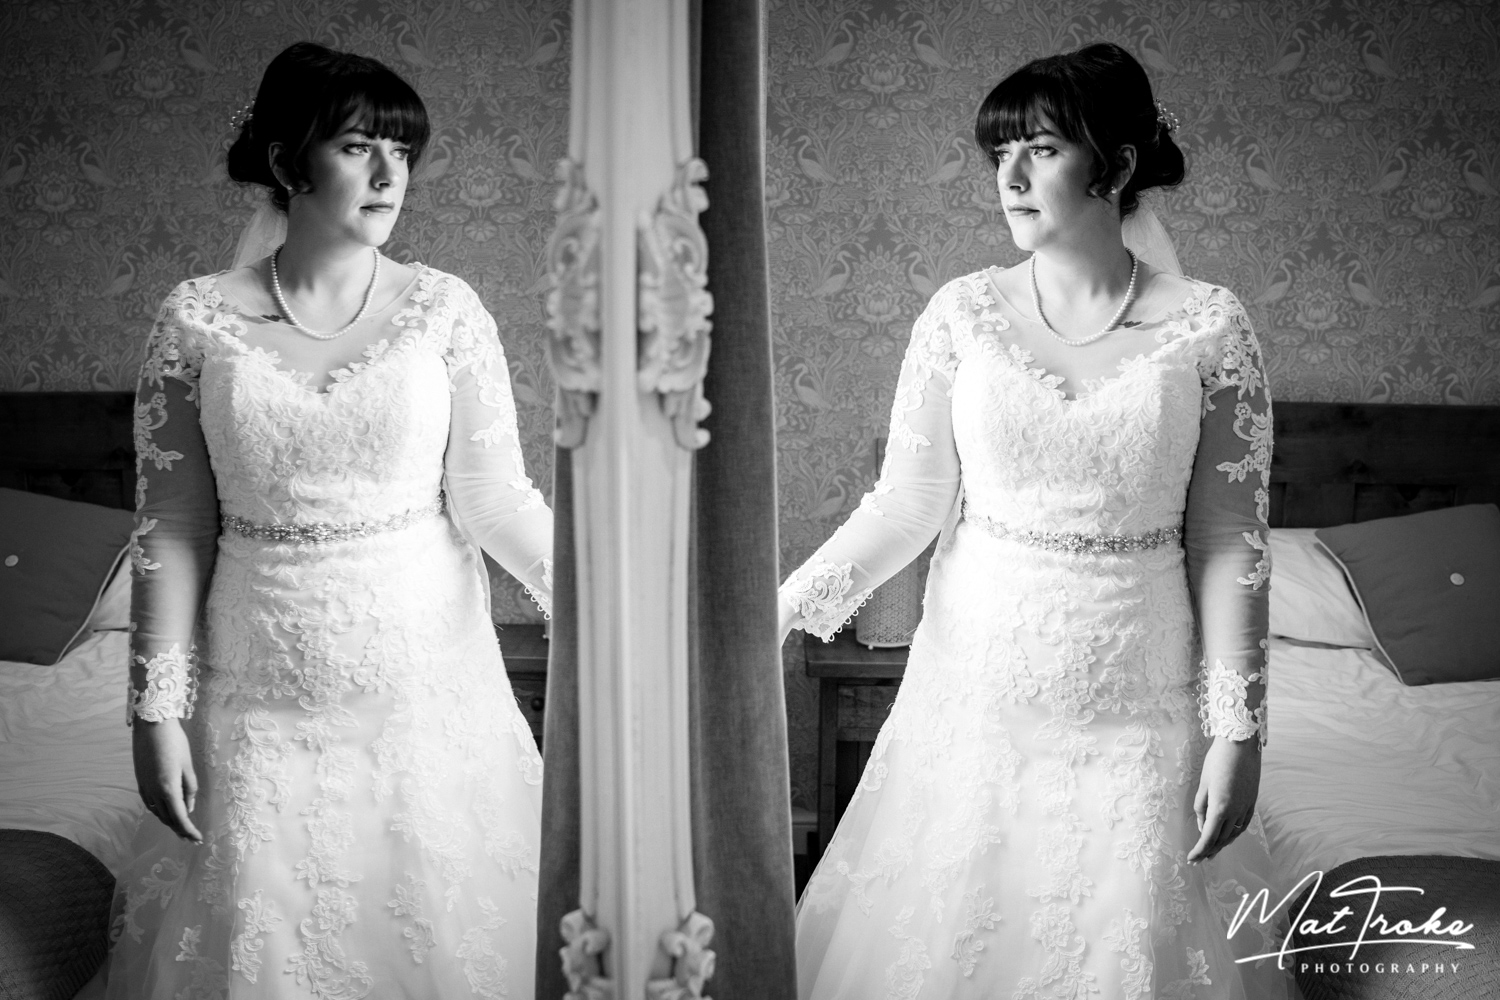 bride-mirror-prep-bridal-white-heart-inn-moorwood-alfreton-wedding-photographer-photography-sunset-venue